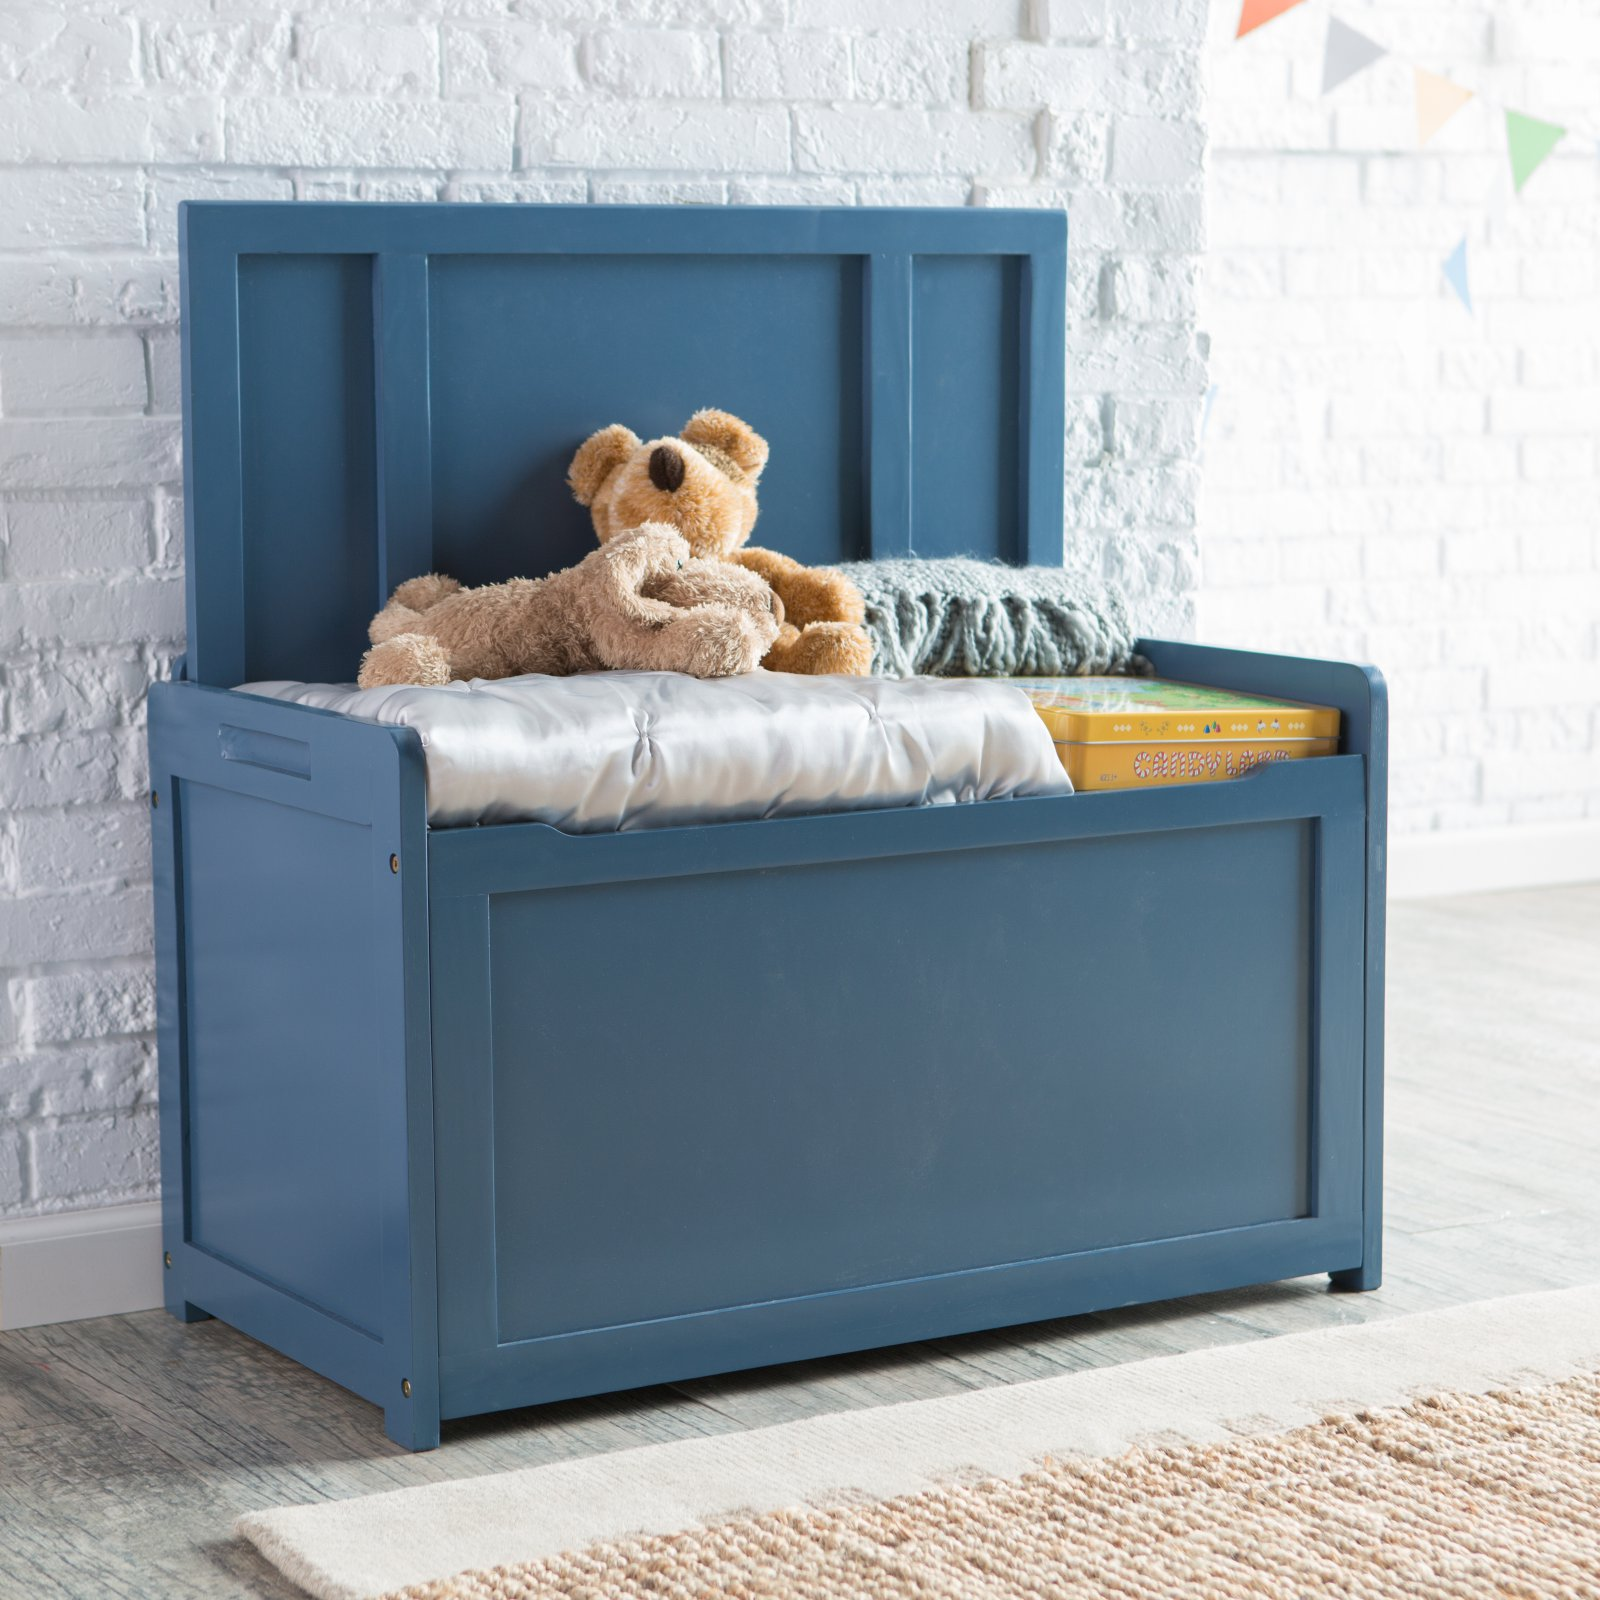 Lipper Blue Toy Box